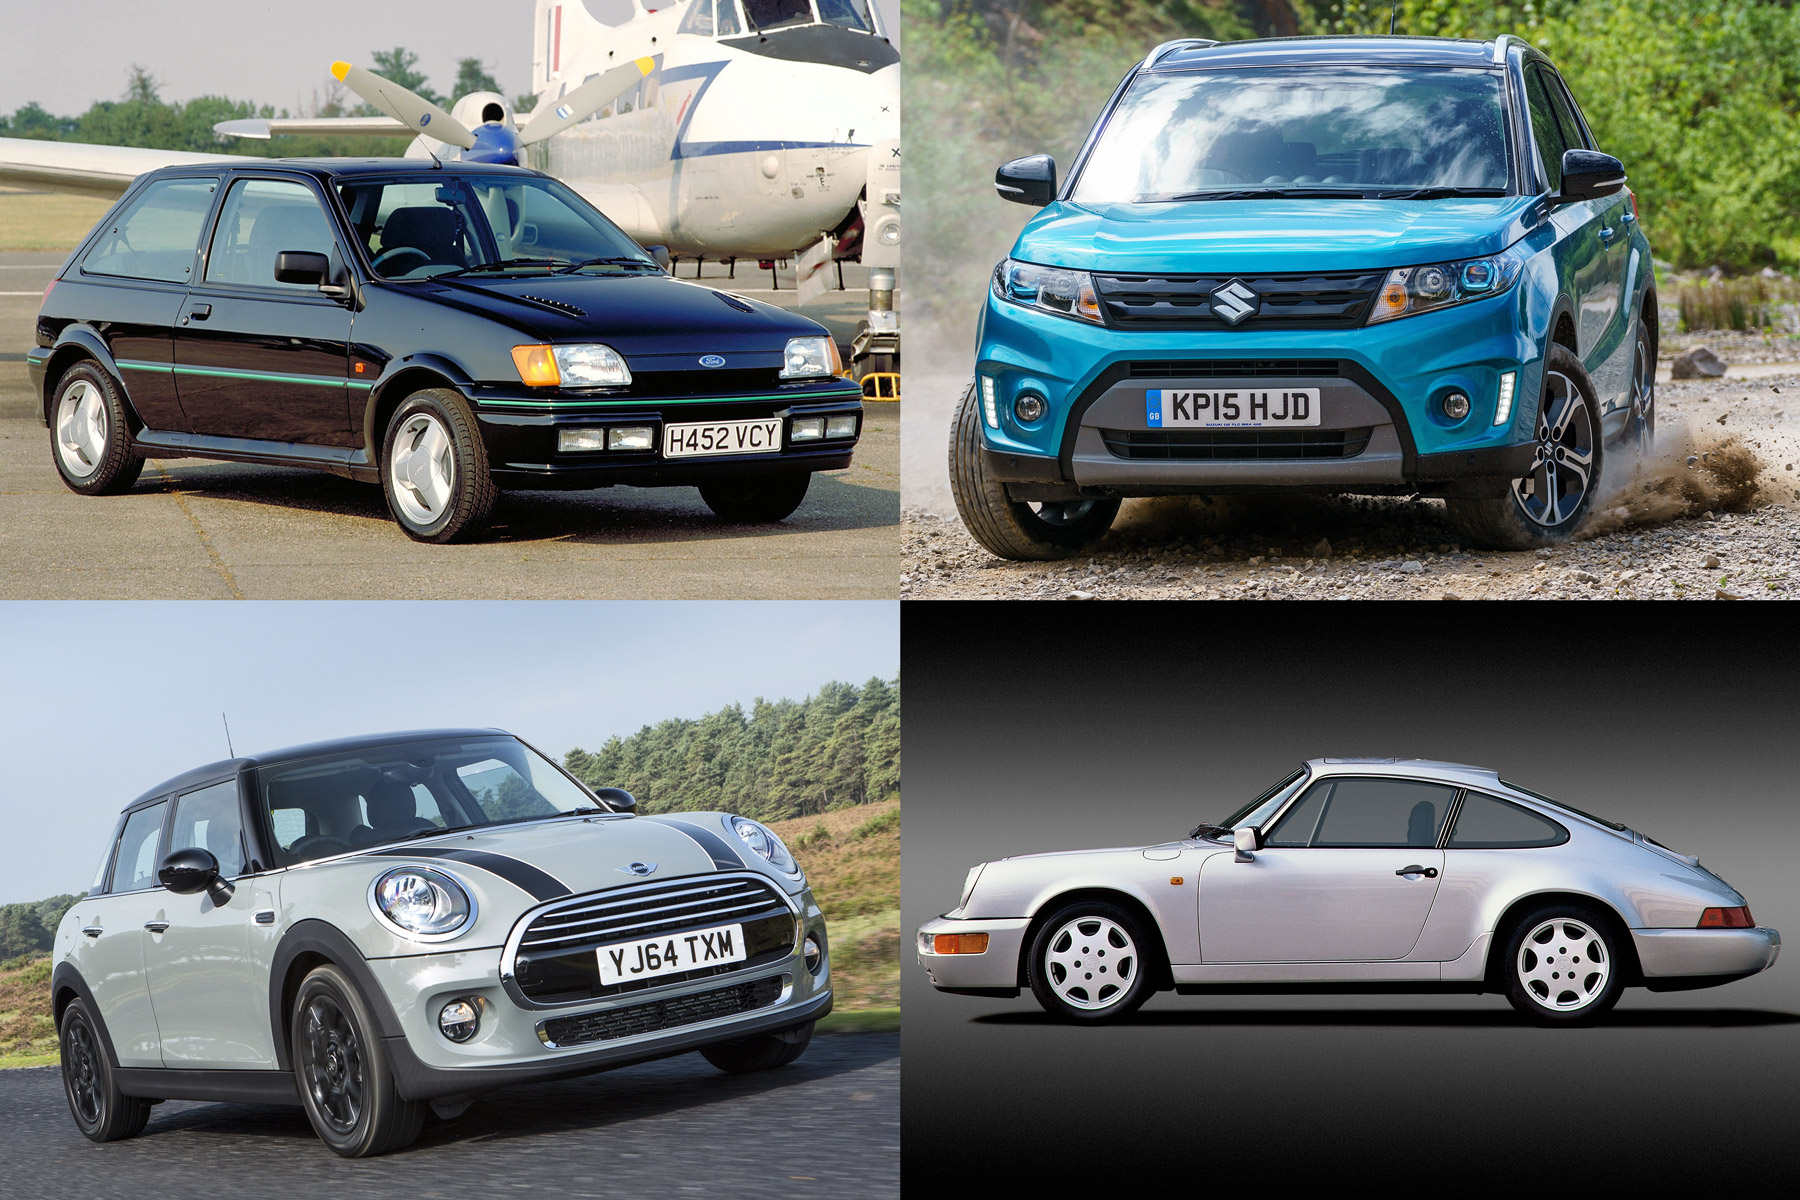 Inflation winners and losers: are new cars getting more expensive?